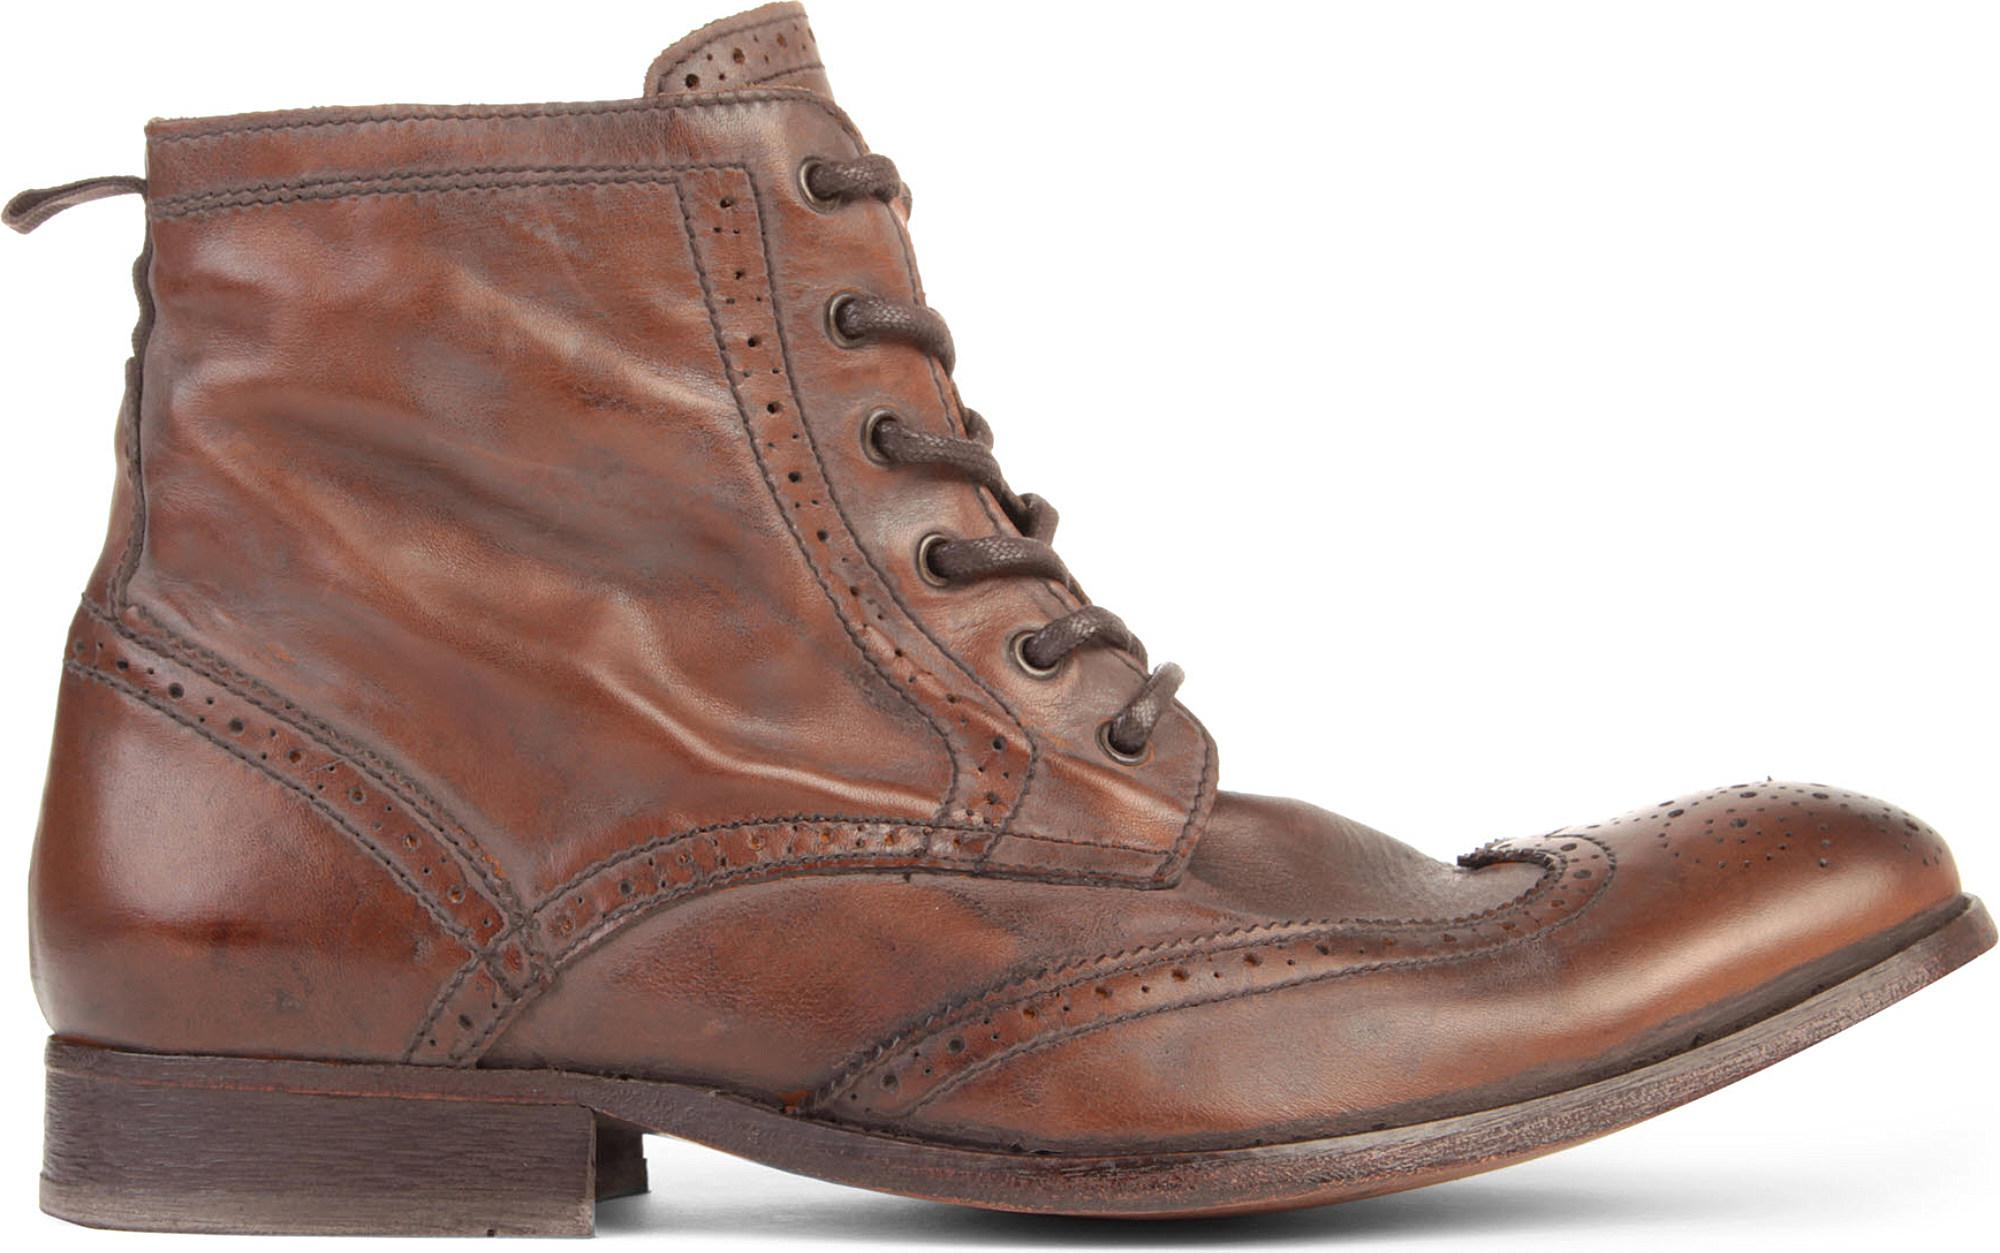 50c110b47b06 H by Hudson Angus Boots in Brown for Men - Lyst